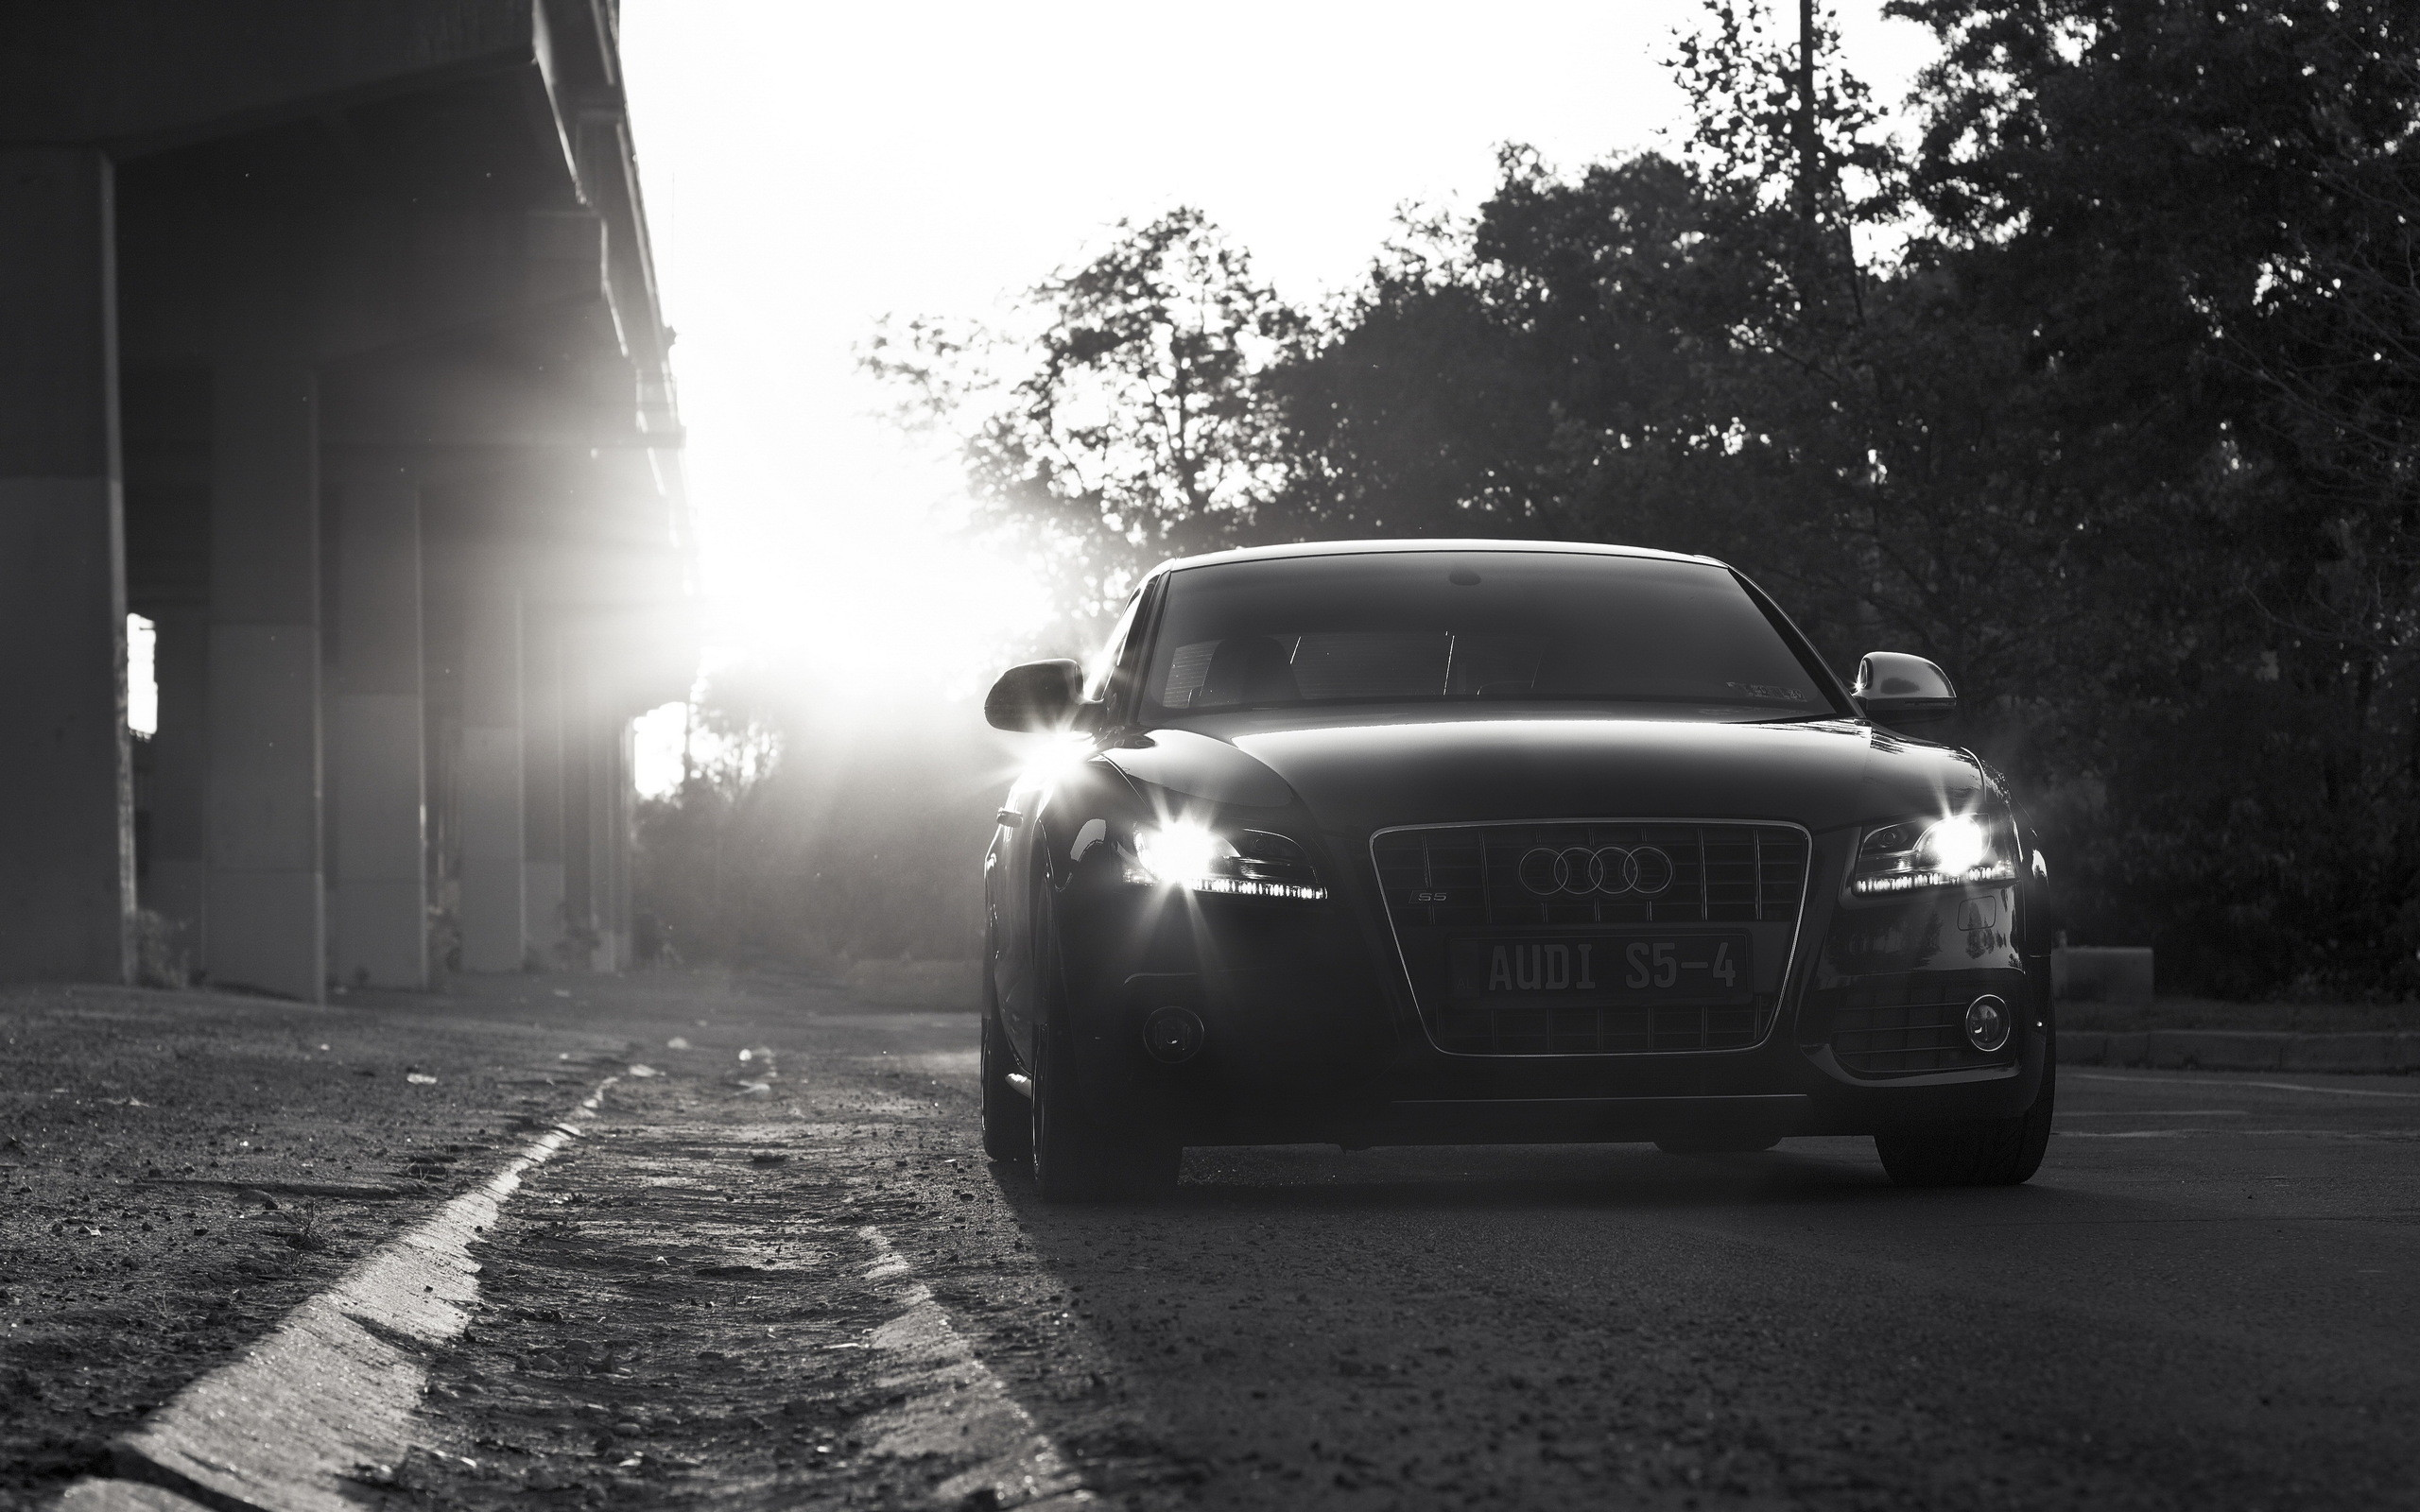 2560x1600 wallpaper.wiki-Audi-S5-Background-HD-PIC-WPB0015749